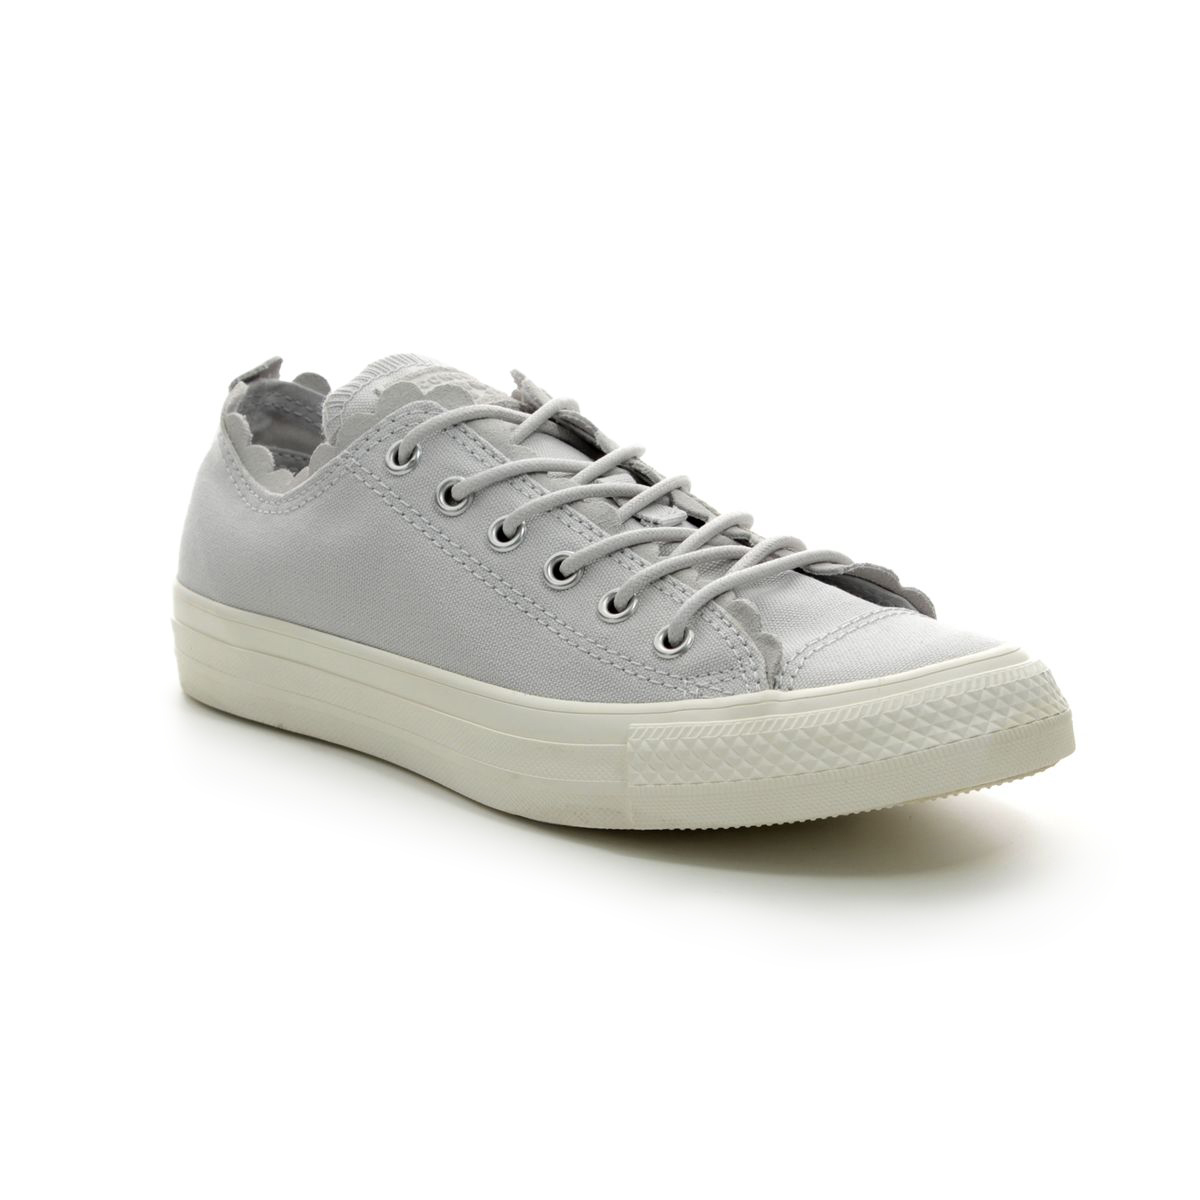 7cd2eae6e3ae06 Converse Trainers - Light Grey - 564112C ALL STAR FRILLS